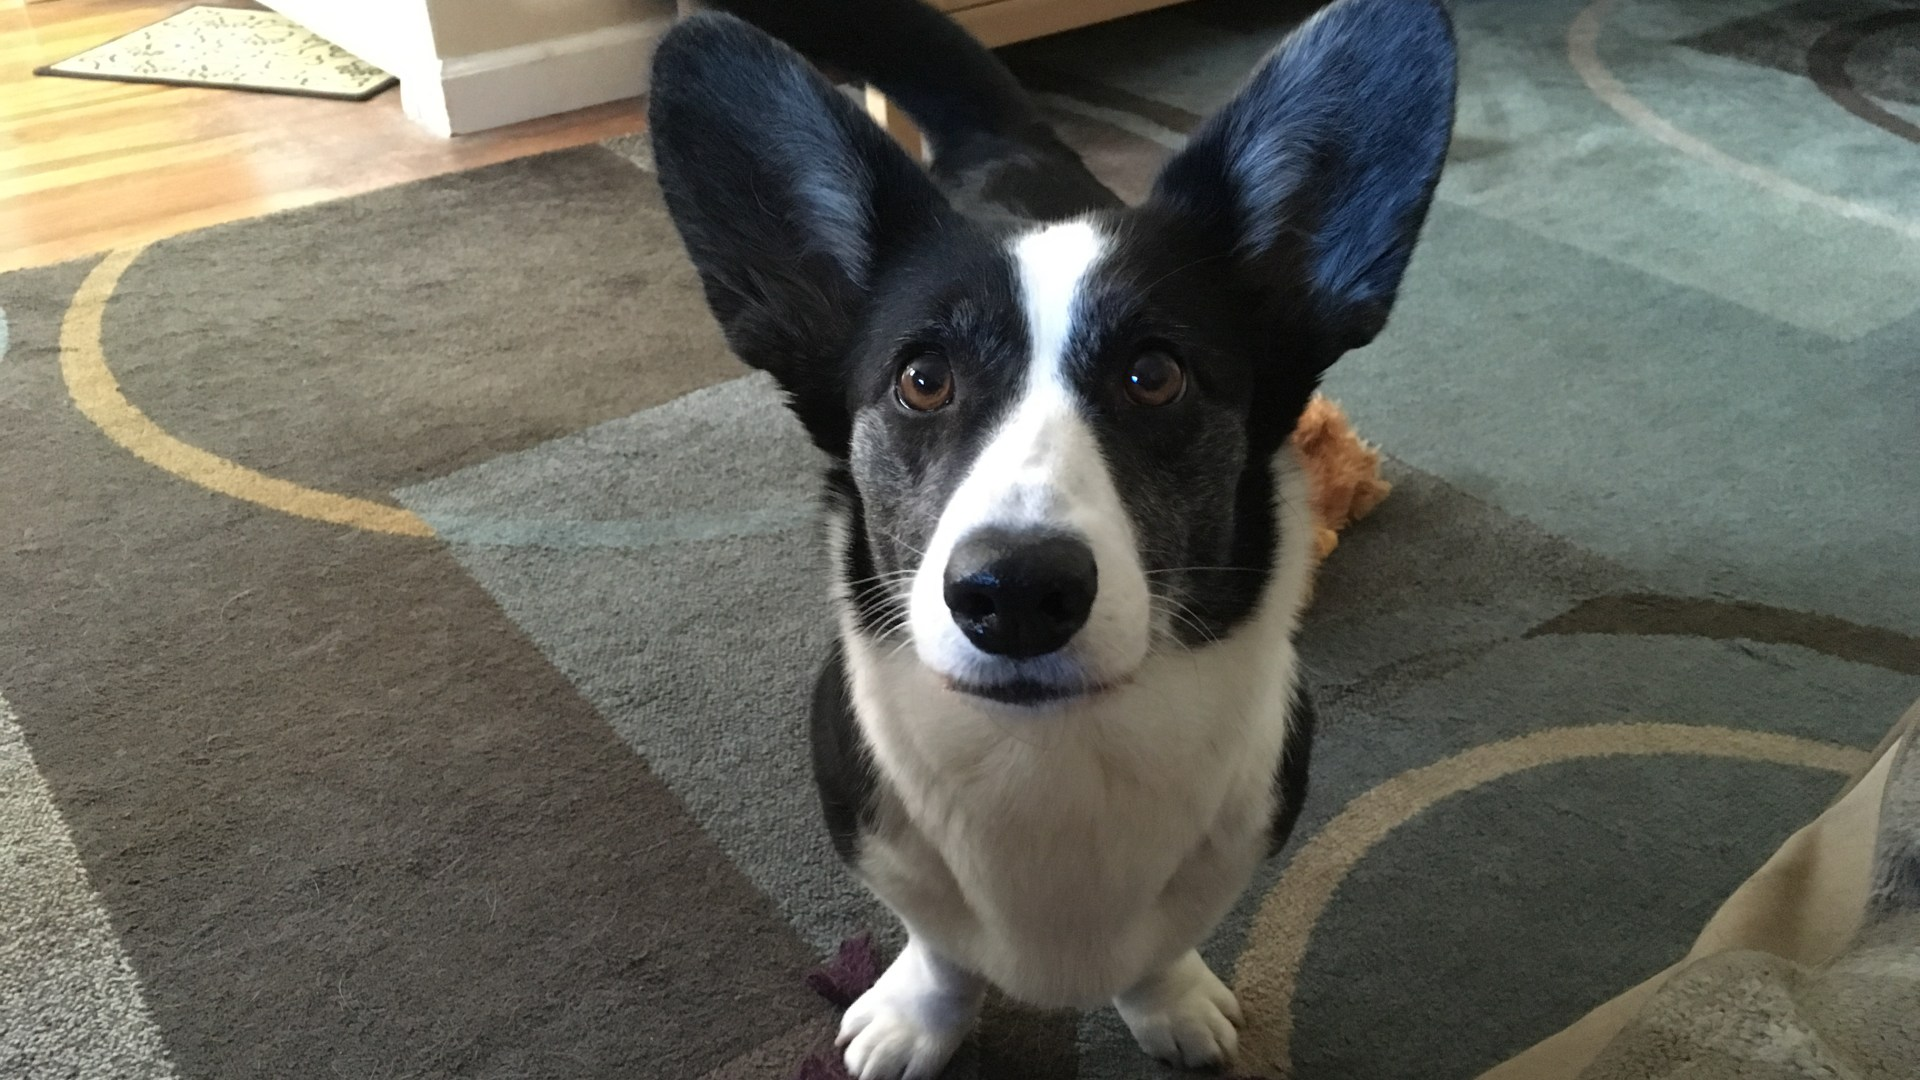 black and white corgi staring intently at the camera, standing on a blue pattern rug